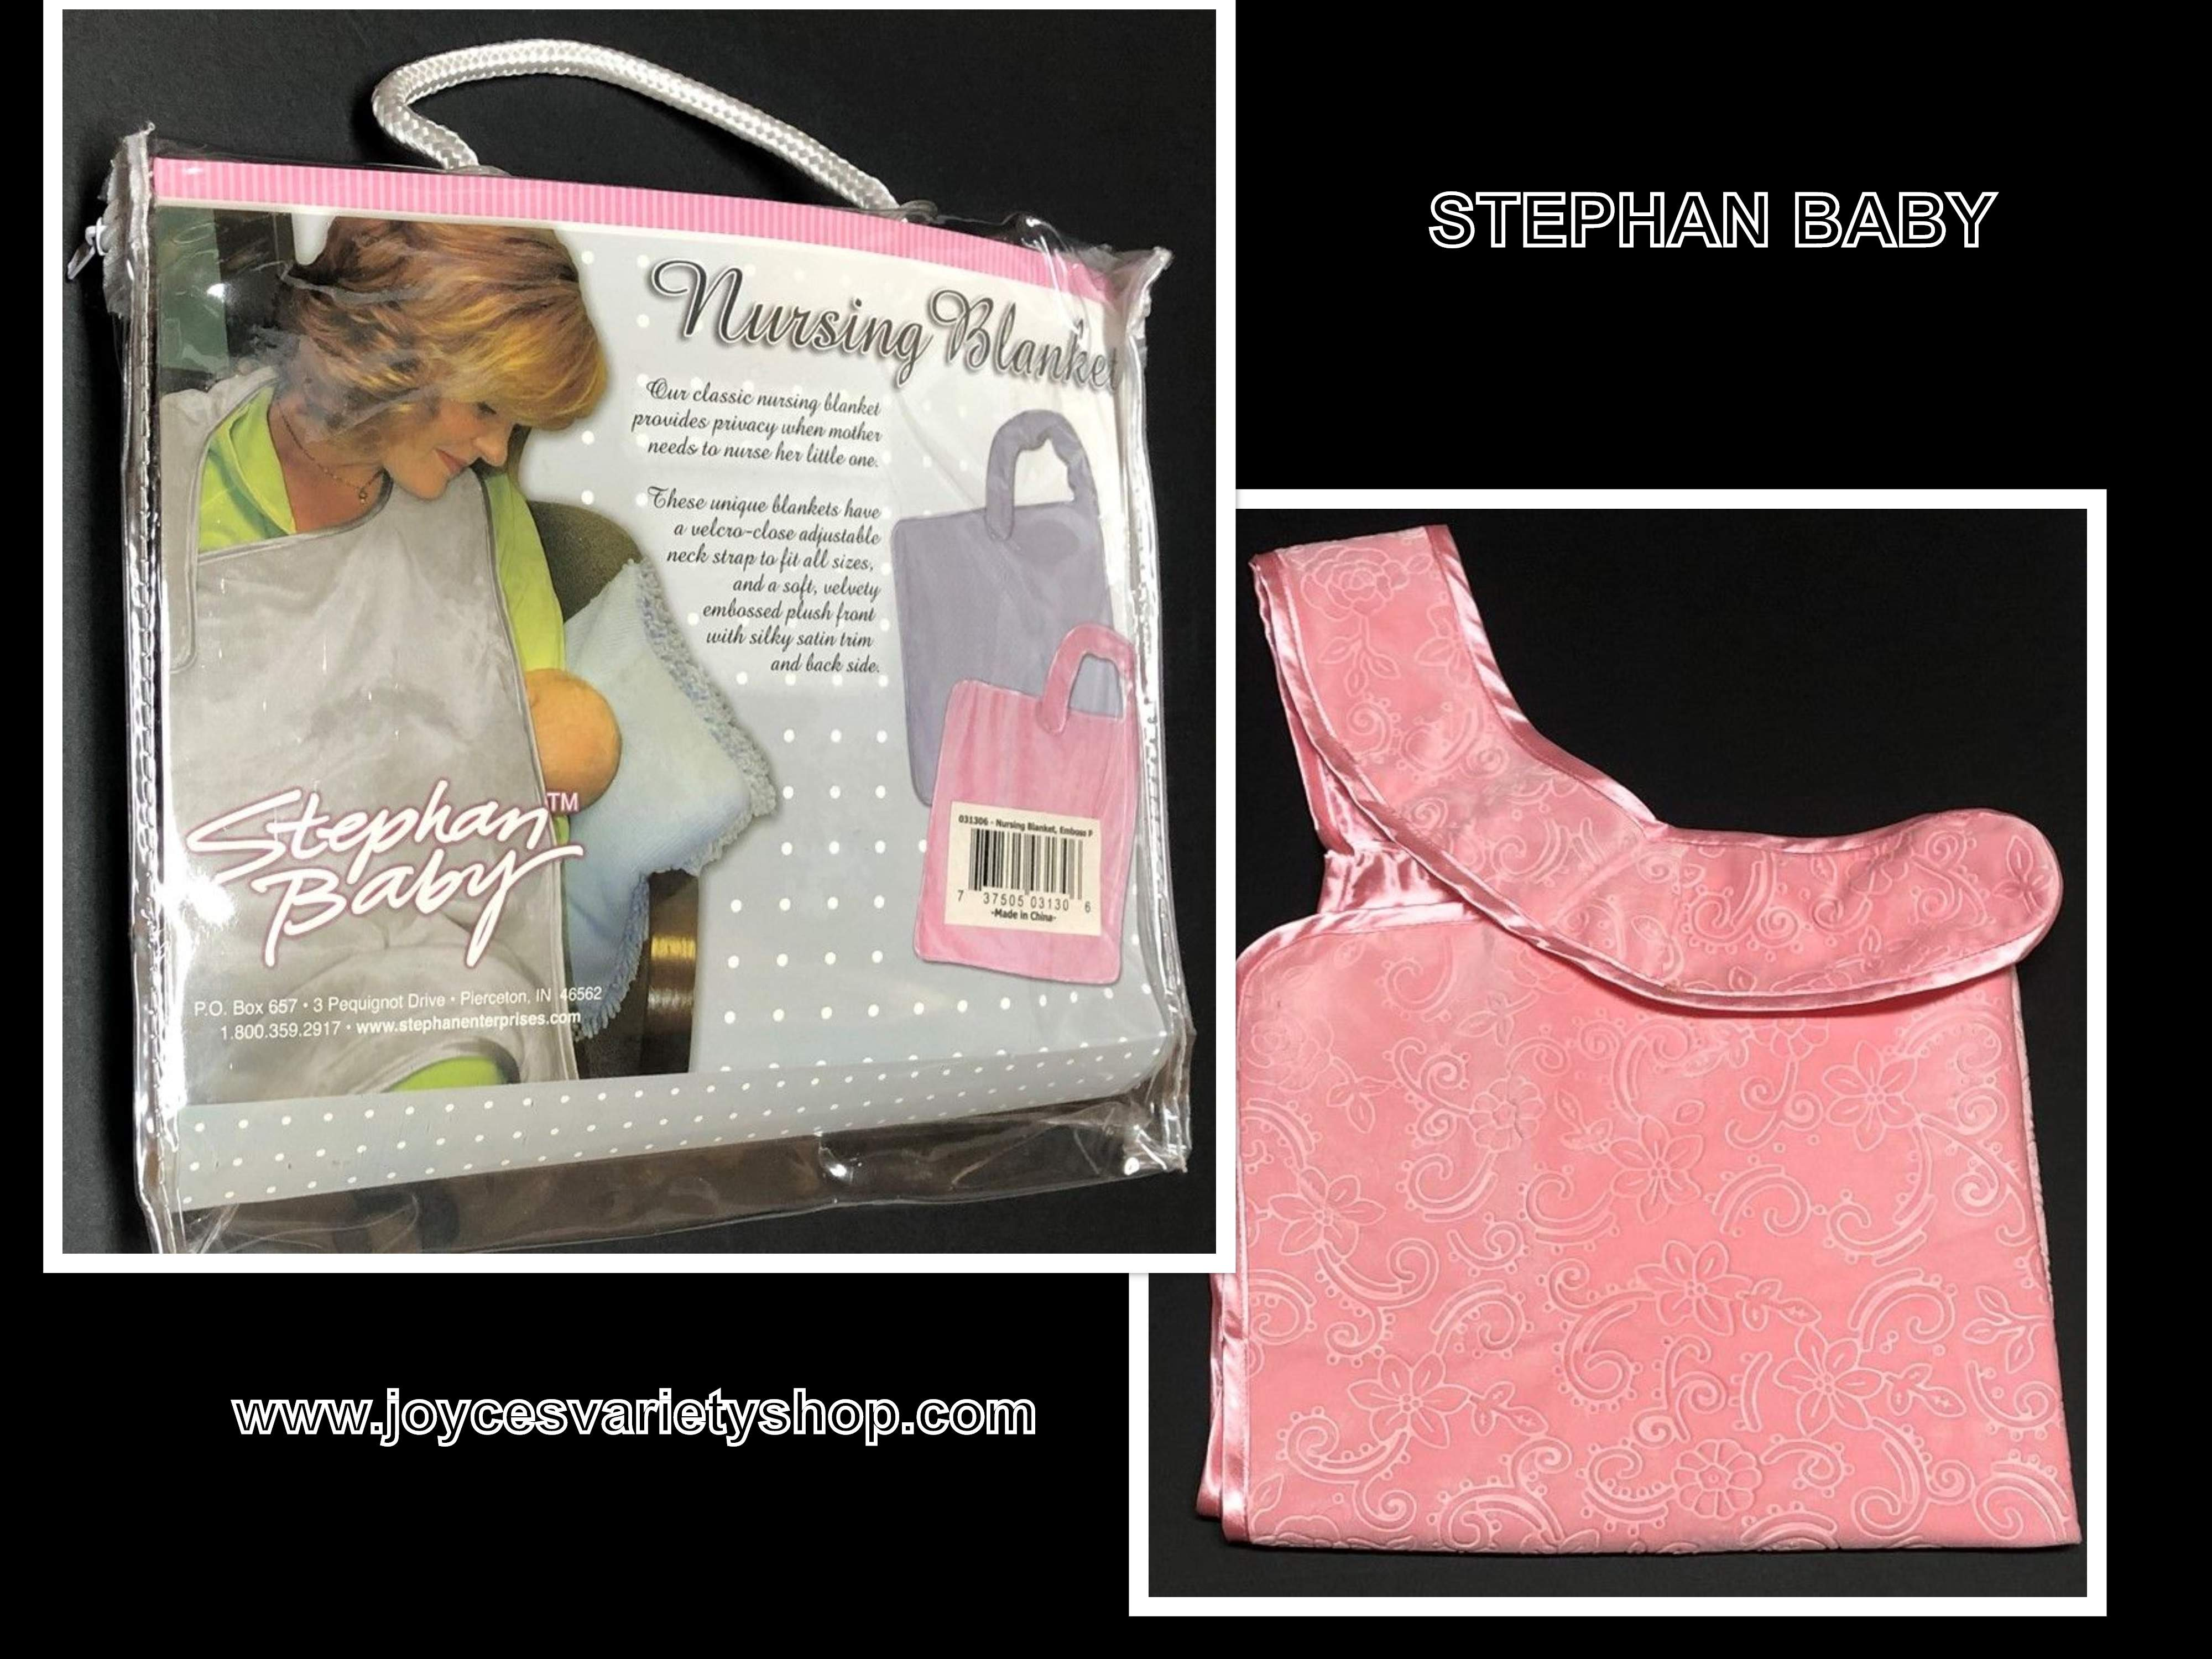 Stephan Baby Mother's Nursing Blanket Coral Pink EZ Adjustable Strap Plush Soft